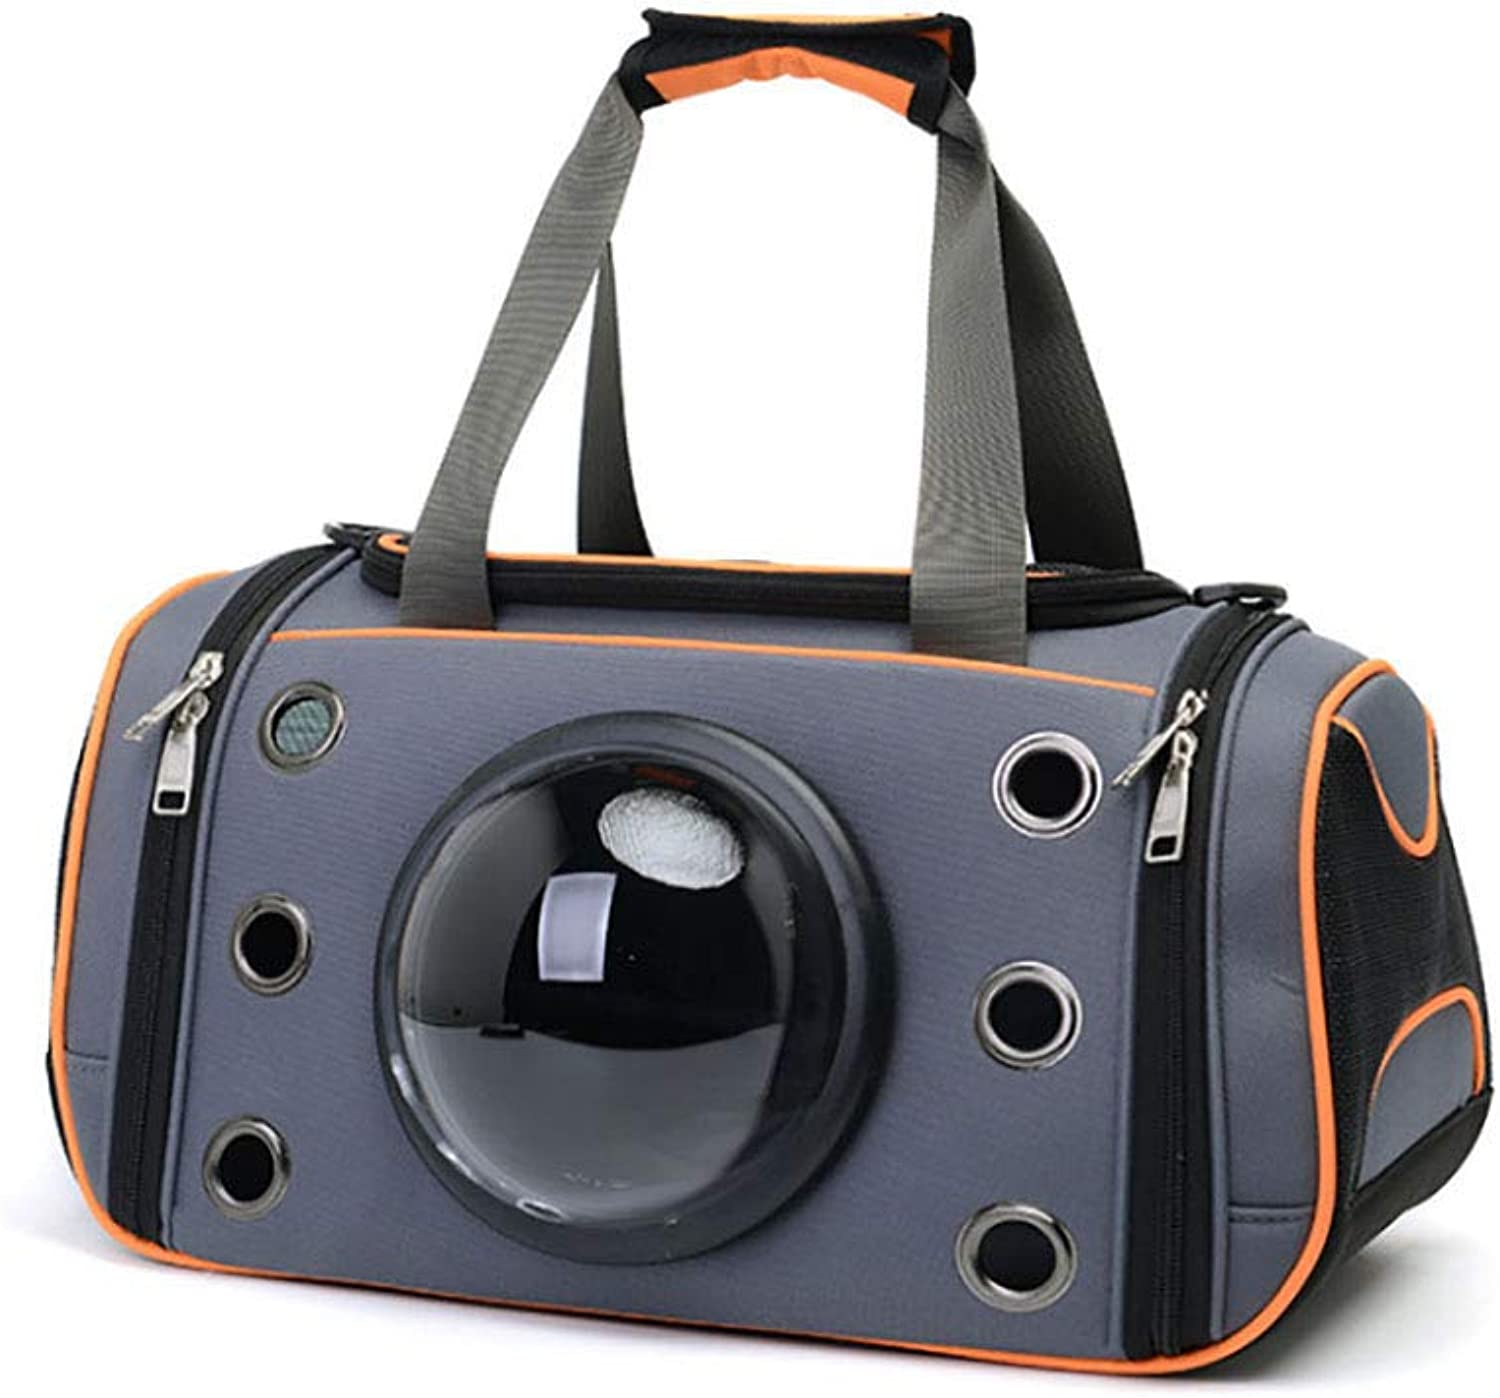 LIULINCUN Fashion Pet Carrier Cats and Dogs Outing Portable Handbag Space Pet Tote Dog Purse for Travel Walking Hiking